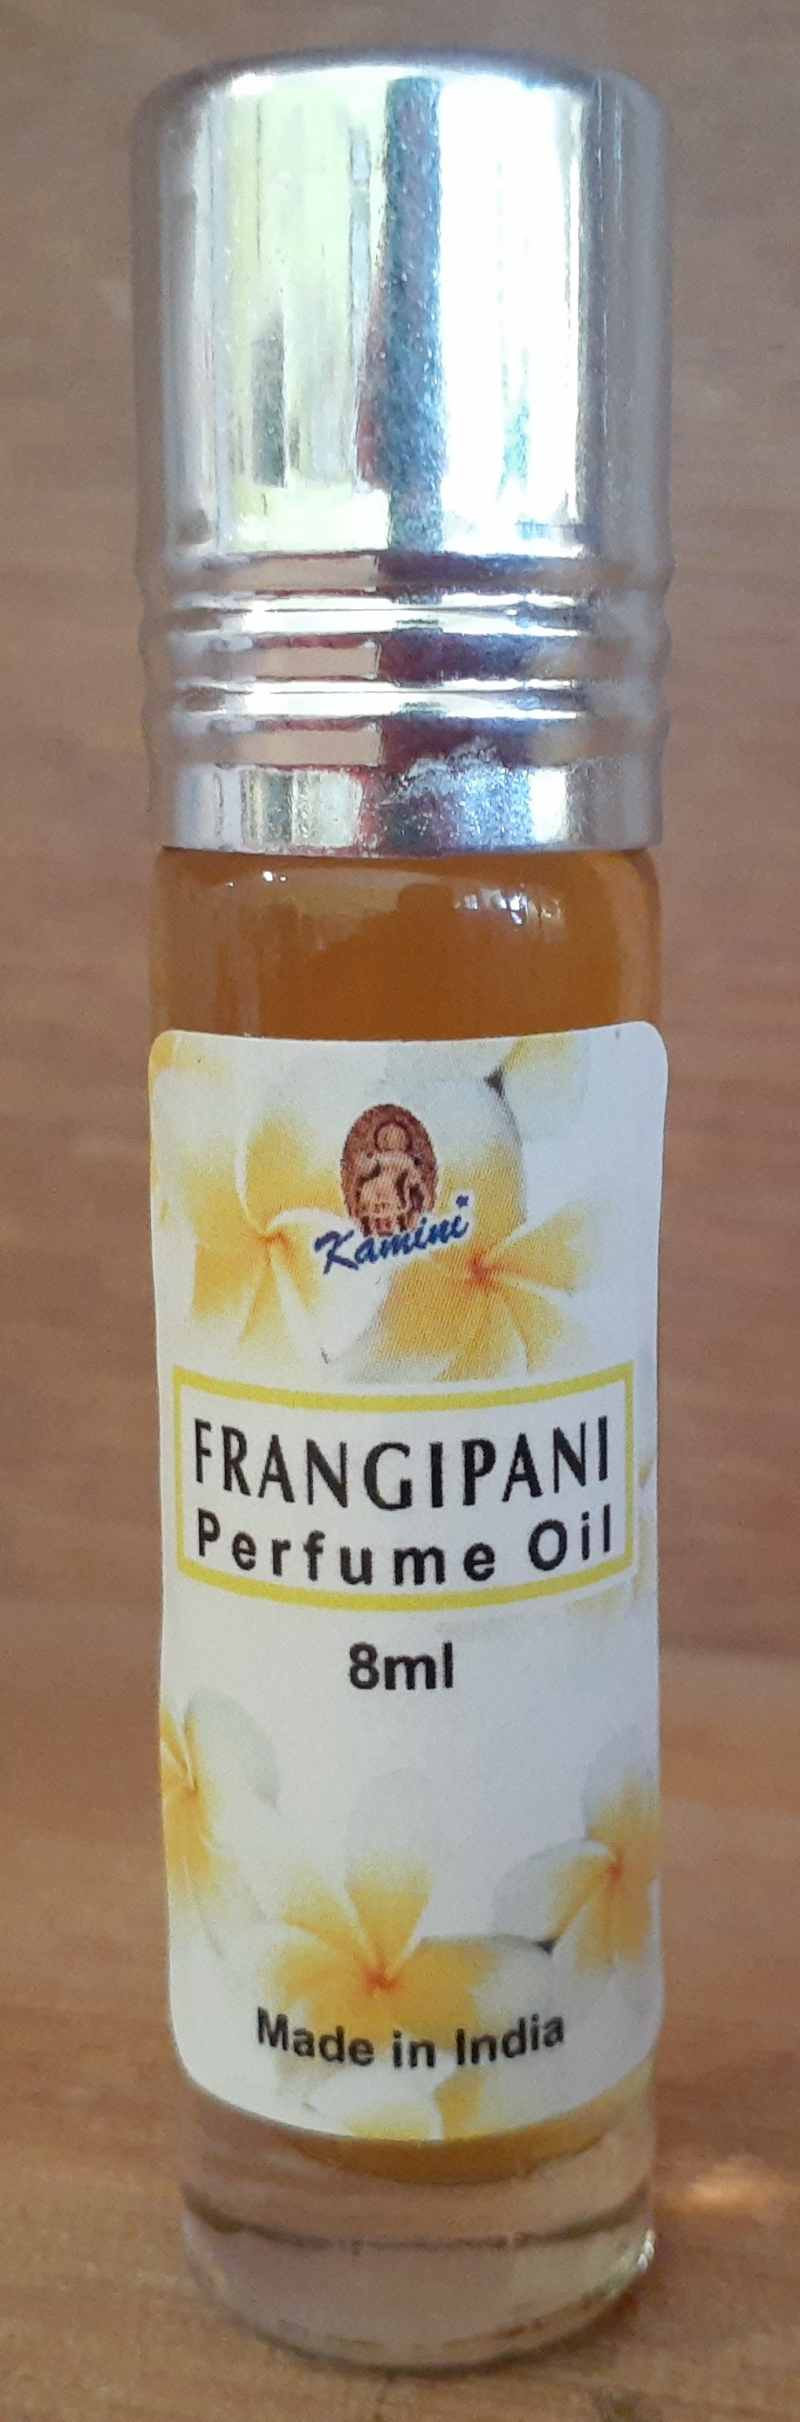 KARNINI PERFUME OIL FRANGIPANI 8ML